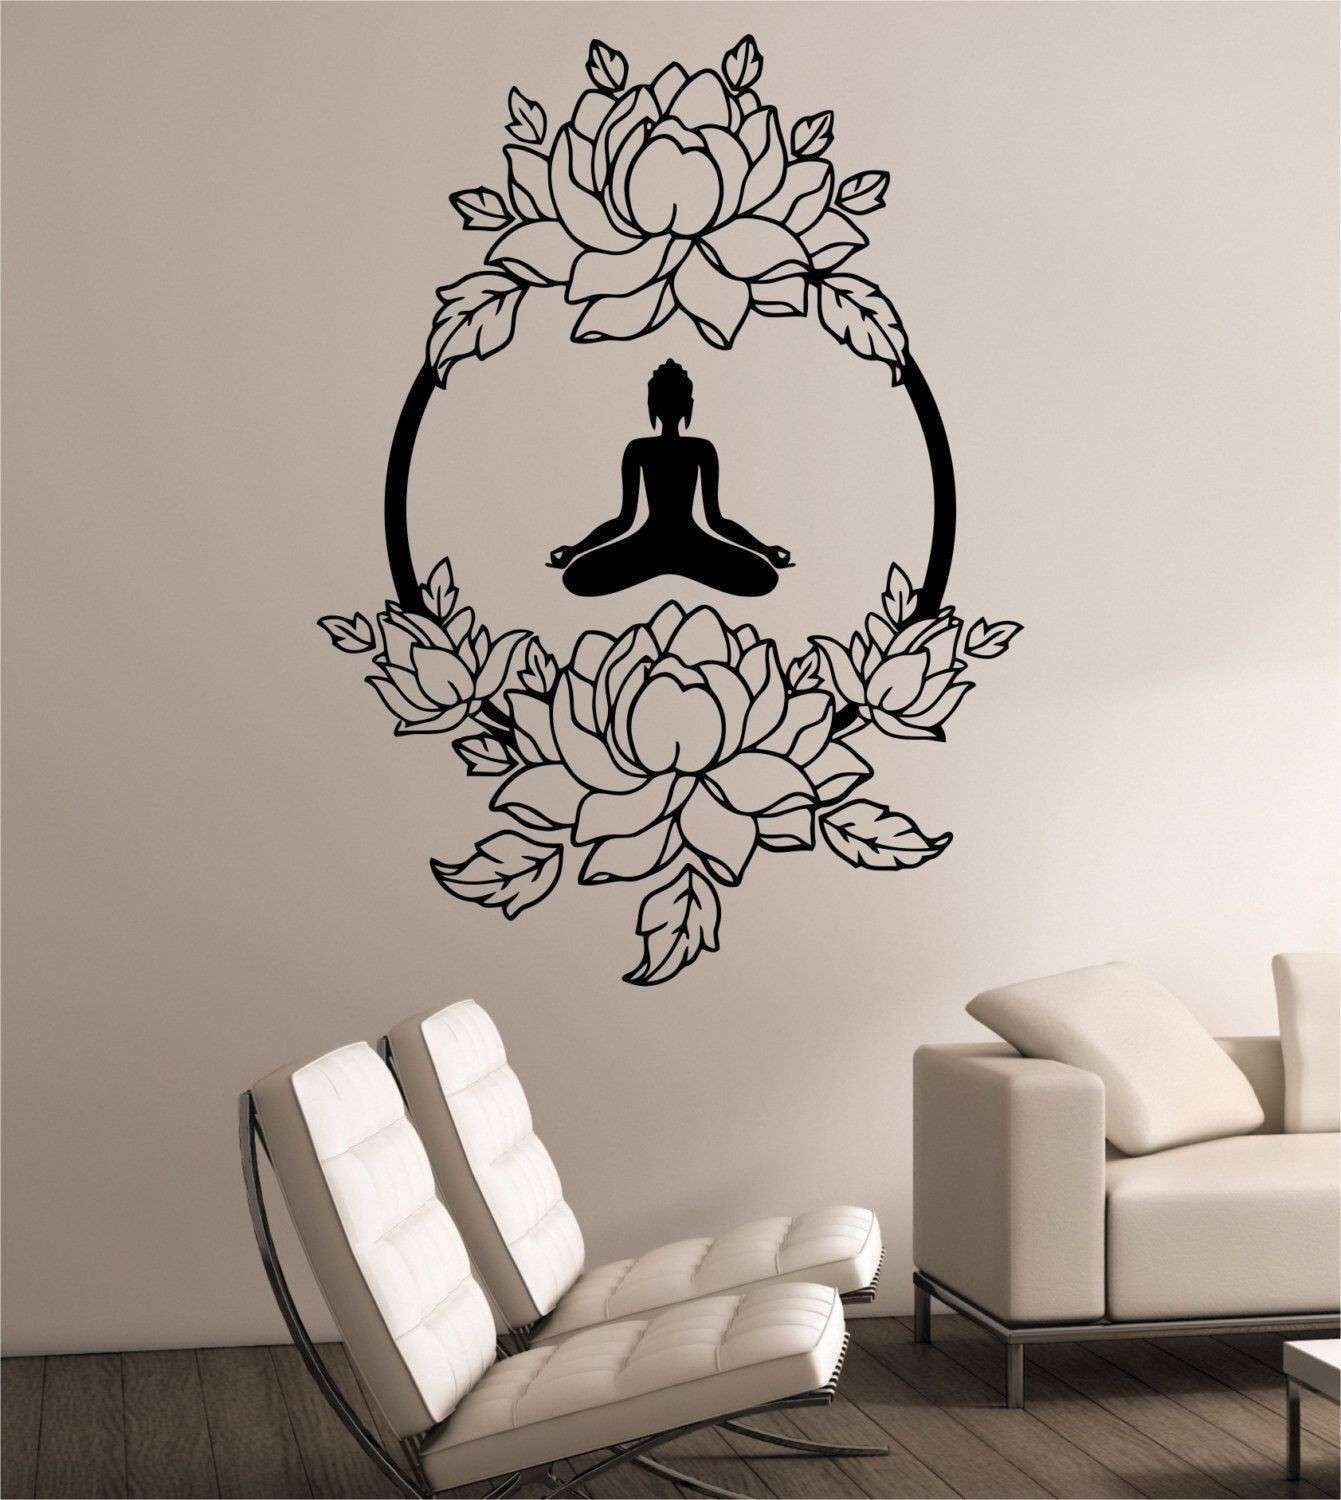 Cool Wall Art For Bedroom Fresh Wall Decal Luxury 1 Kirkland Wall With Regard To Best And Newest Cool Wall Art (View 7 of 15)